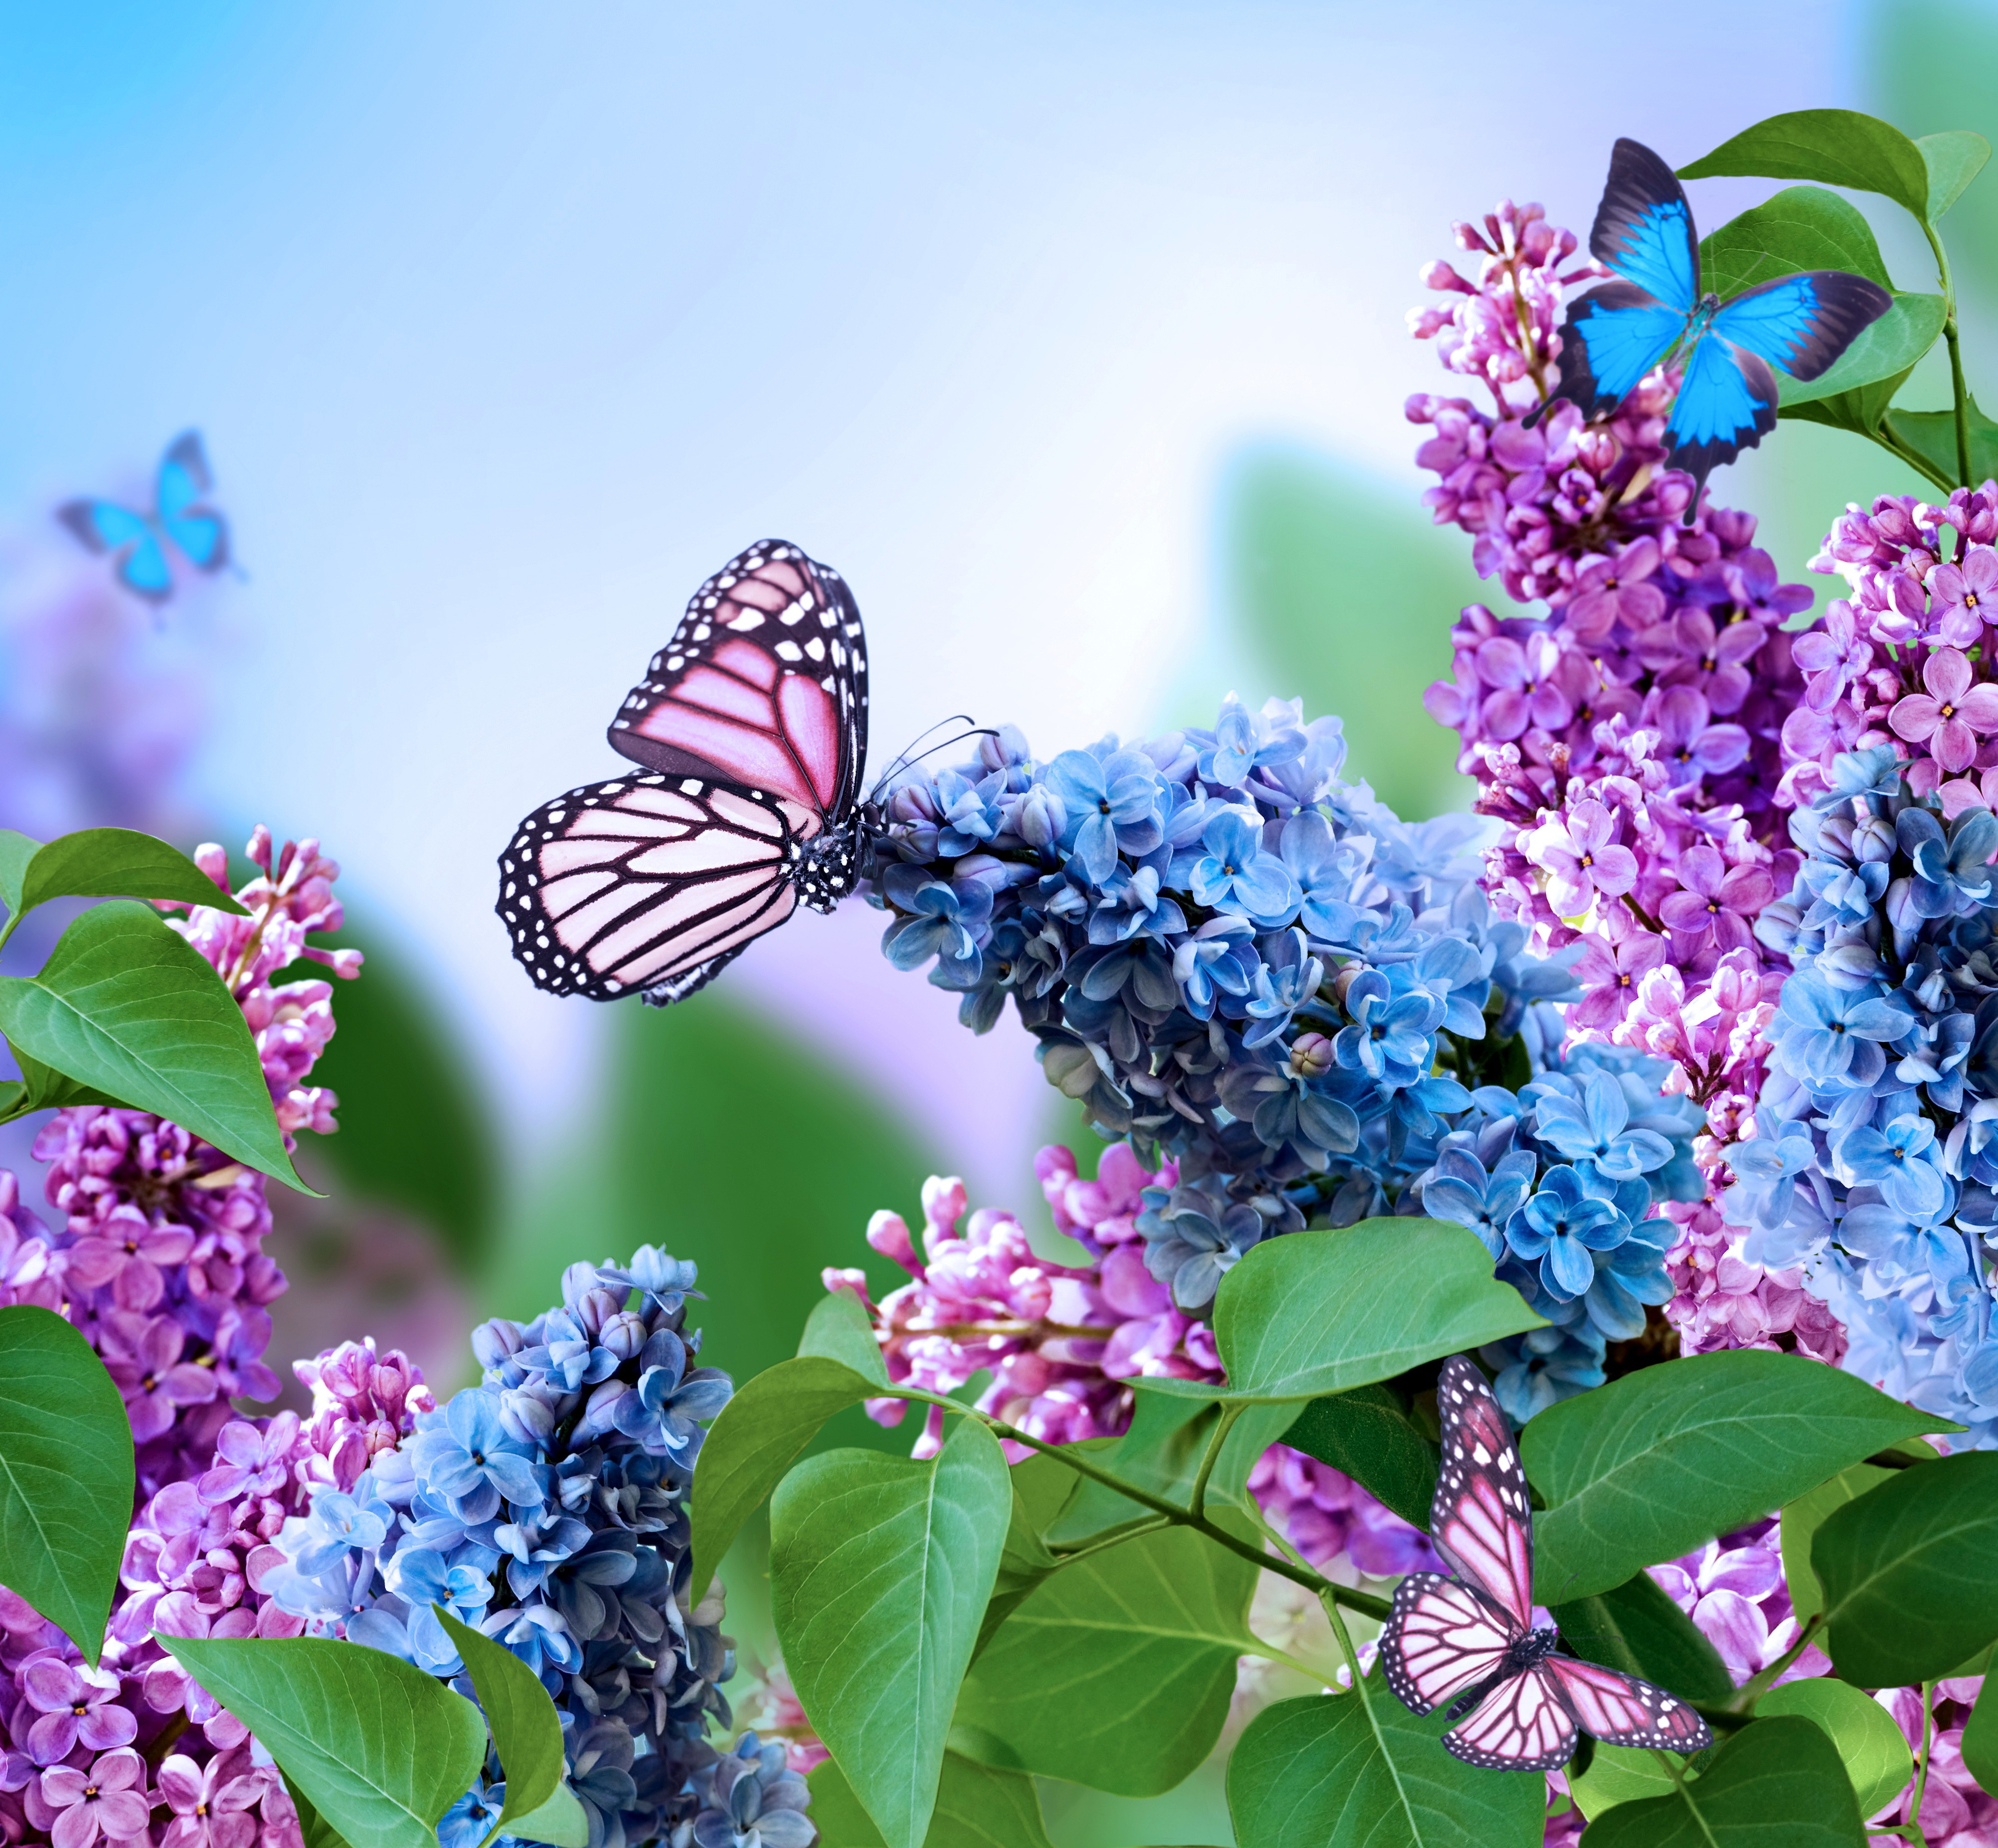 Free photo: Blue flowers bloom - flowers, nature, flower - Non ...